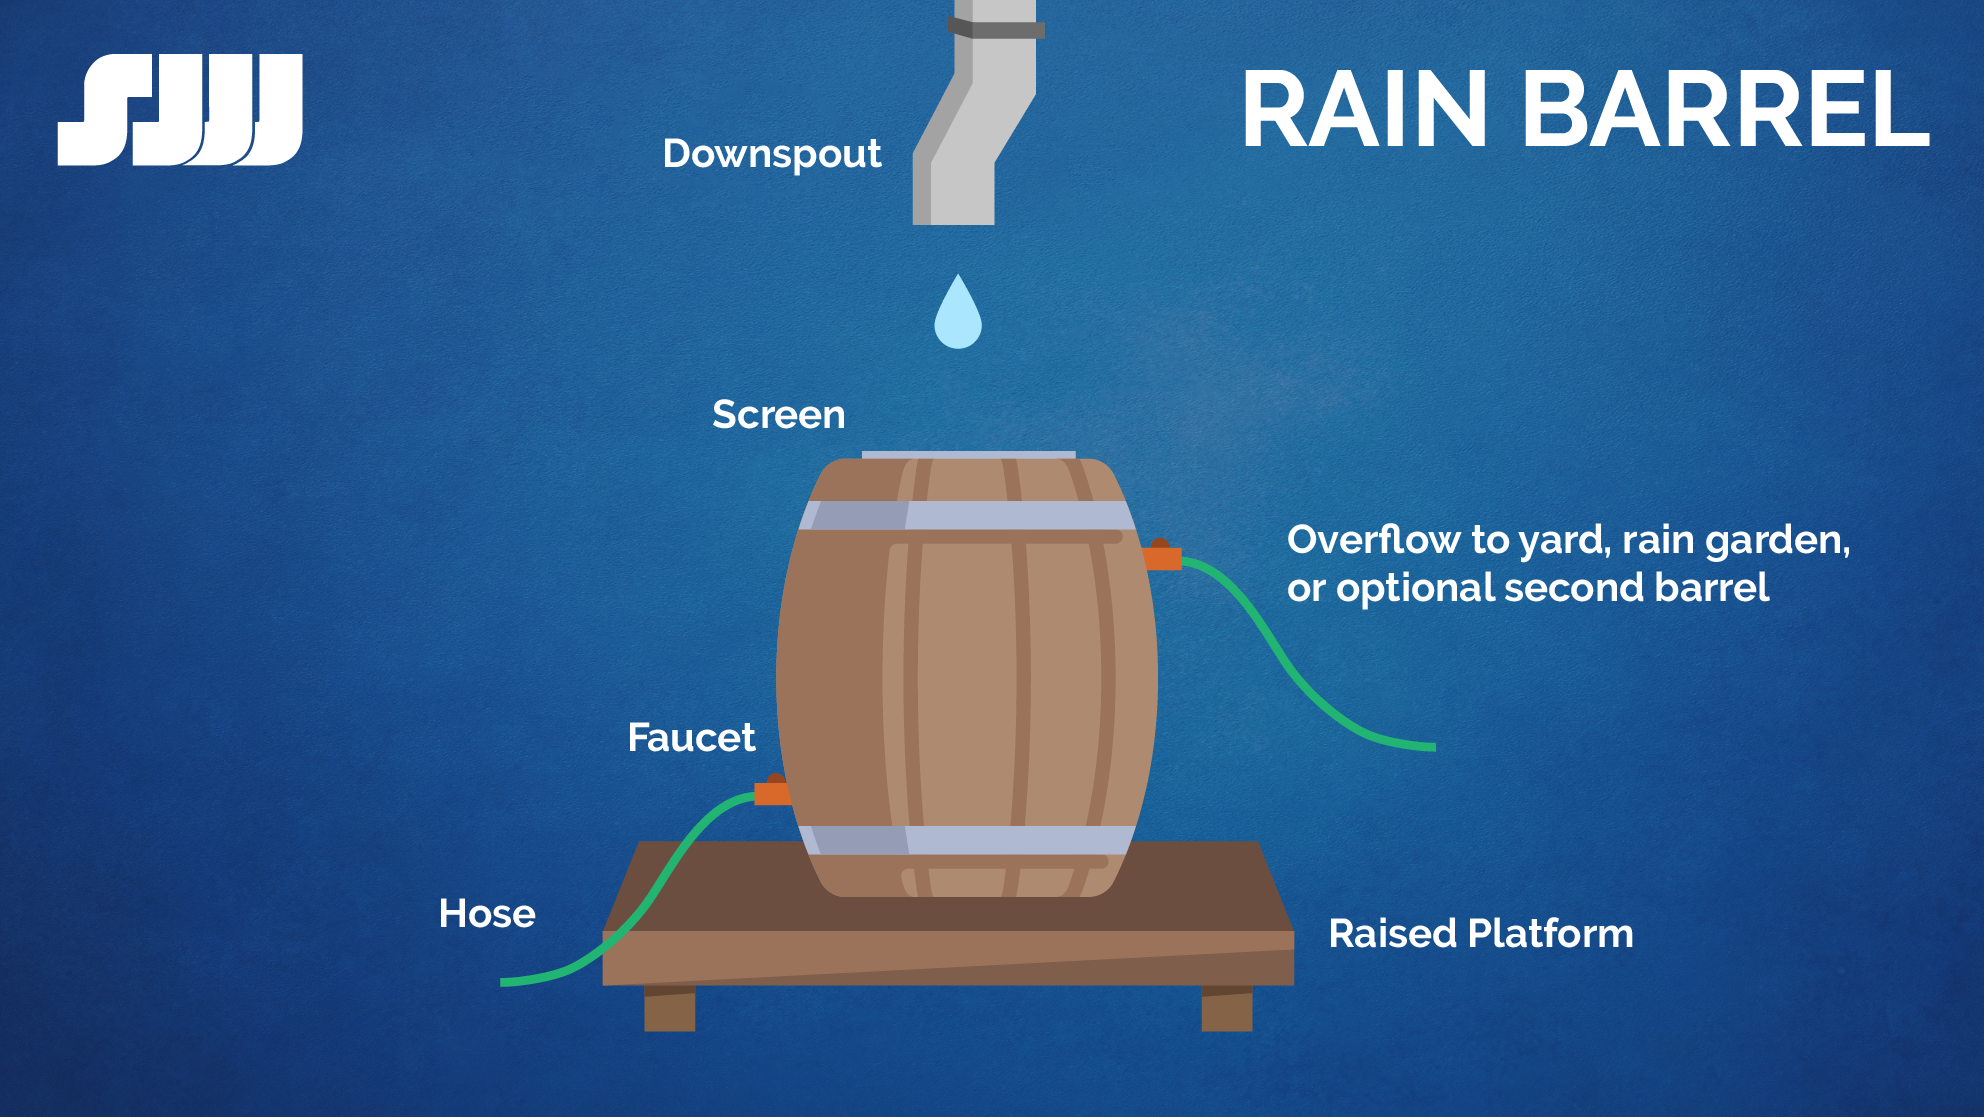 Image of rain barrel and instructions for how to create one yourself.